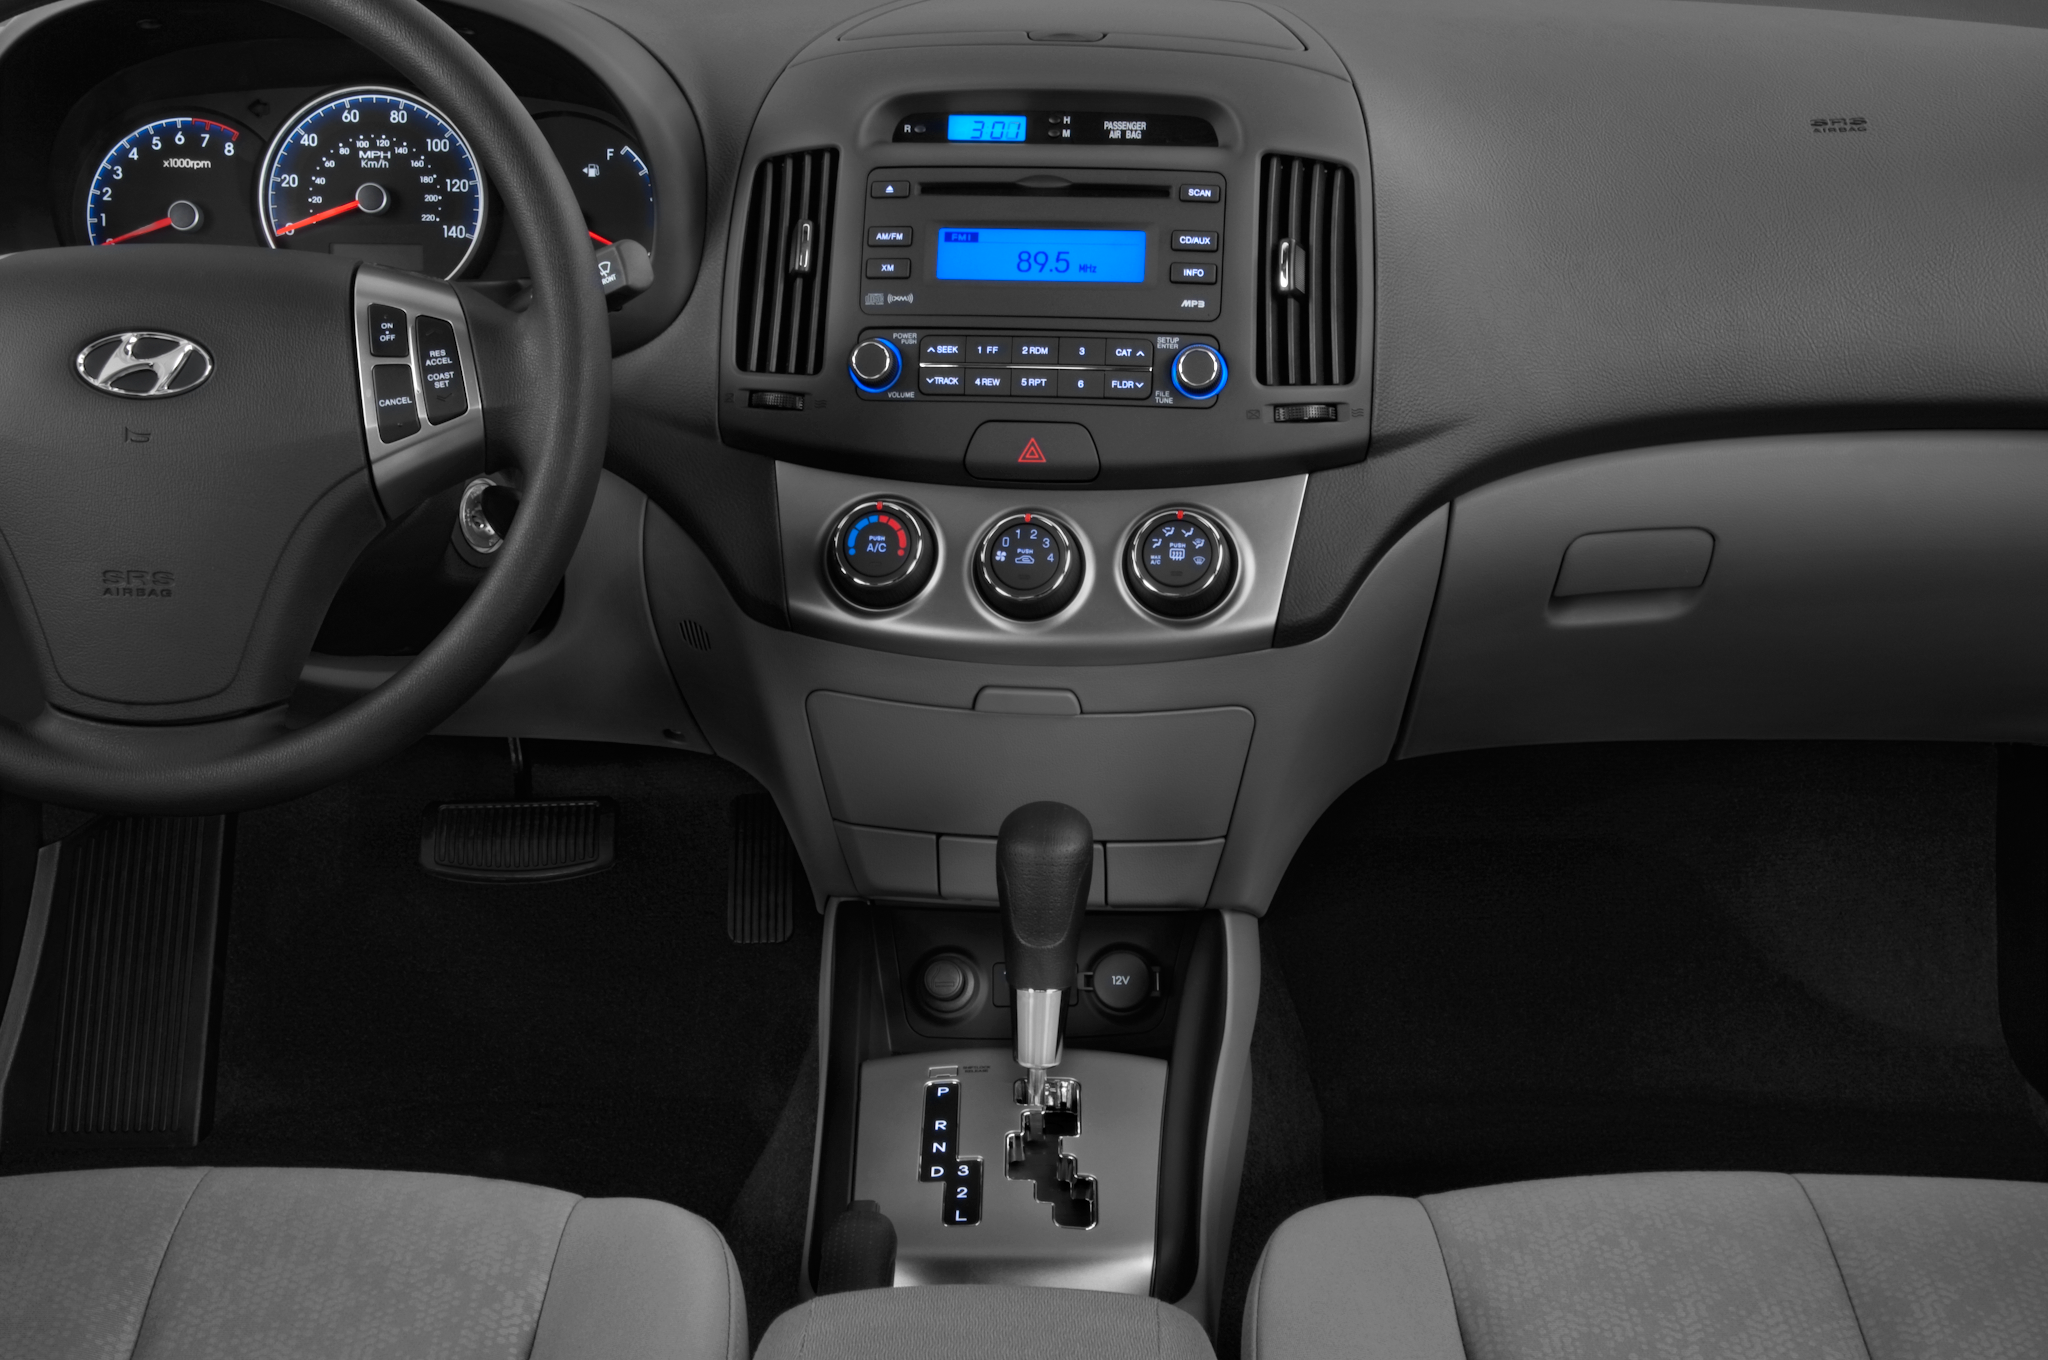 2010 Hyundai Elantra Now Available with In-Dash Navigation